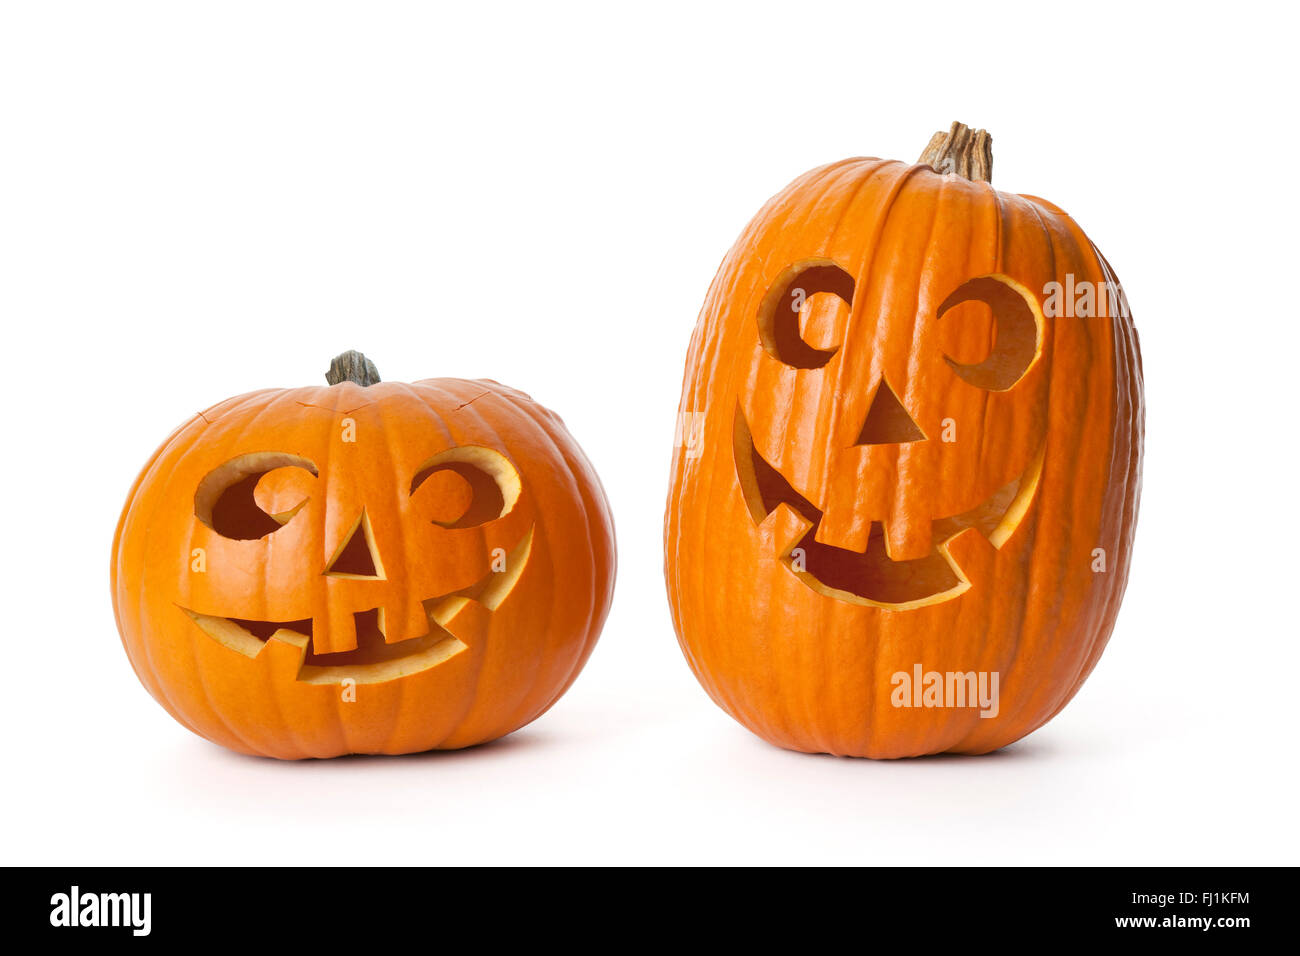 Two Halloween pumpkins on white background - Stock Image